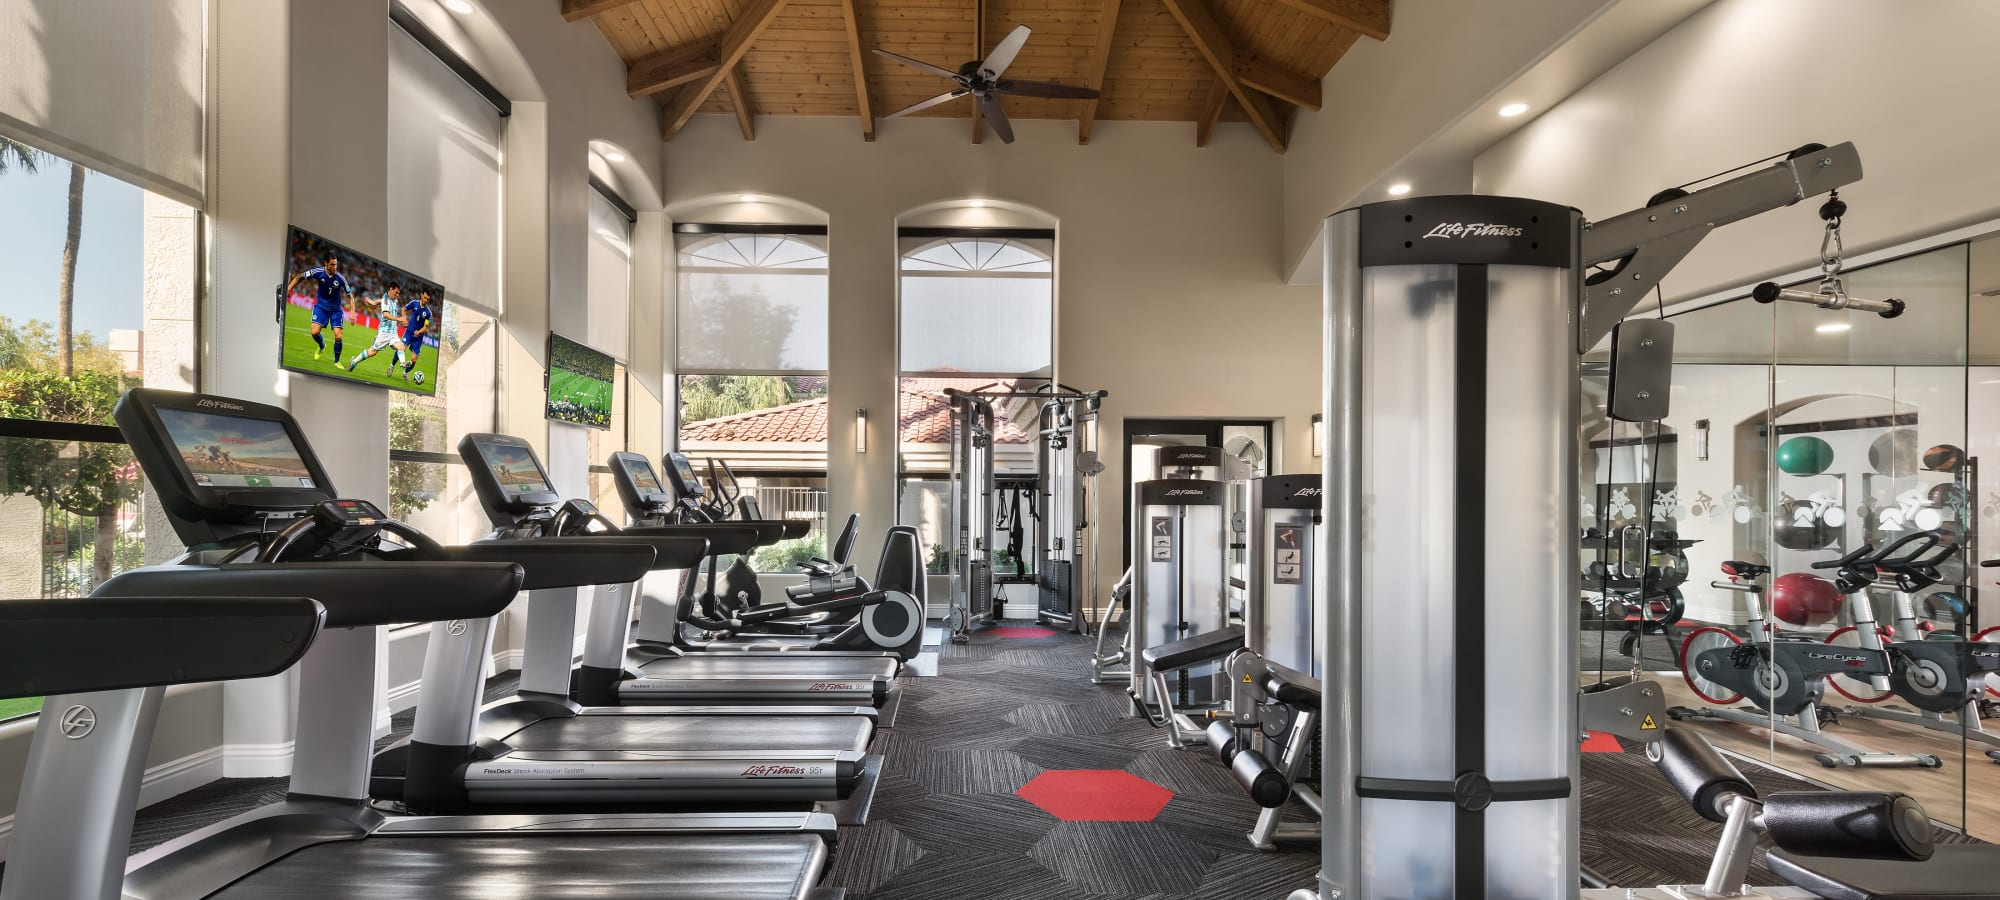 Well-equipped fitness center at San Palmilla in Tempe, Arizona